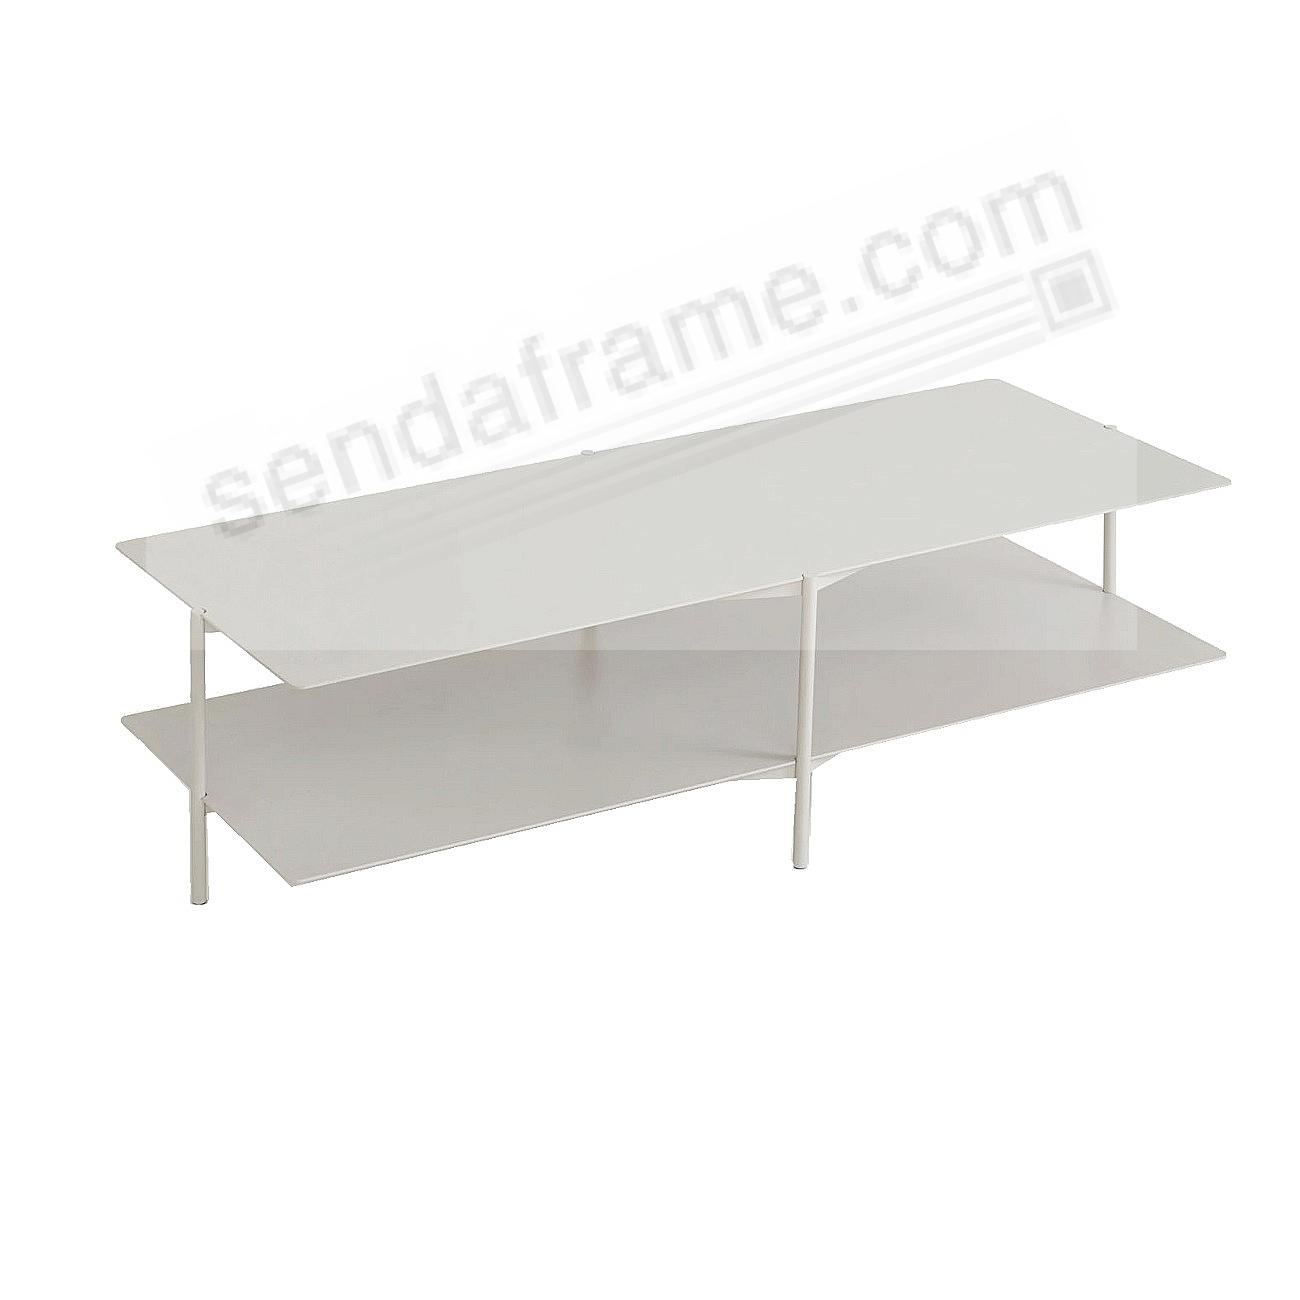 The TIER COFFEE TABLE - Grey - by Umbra®